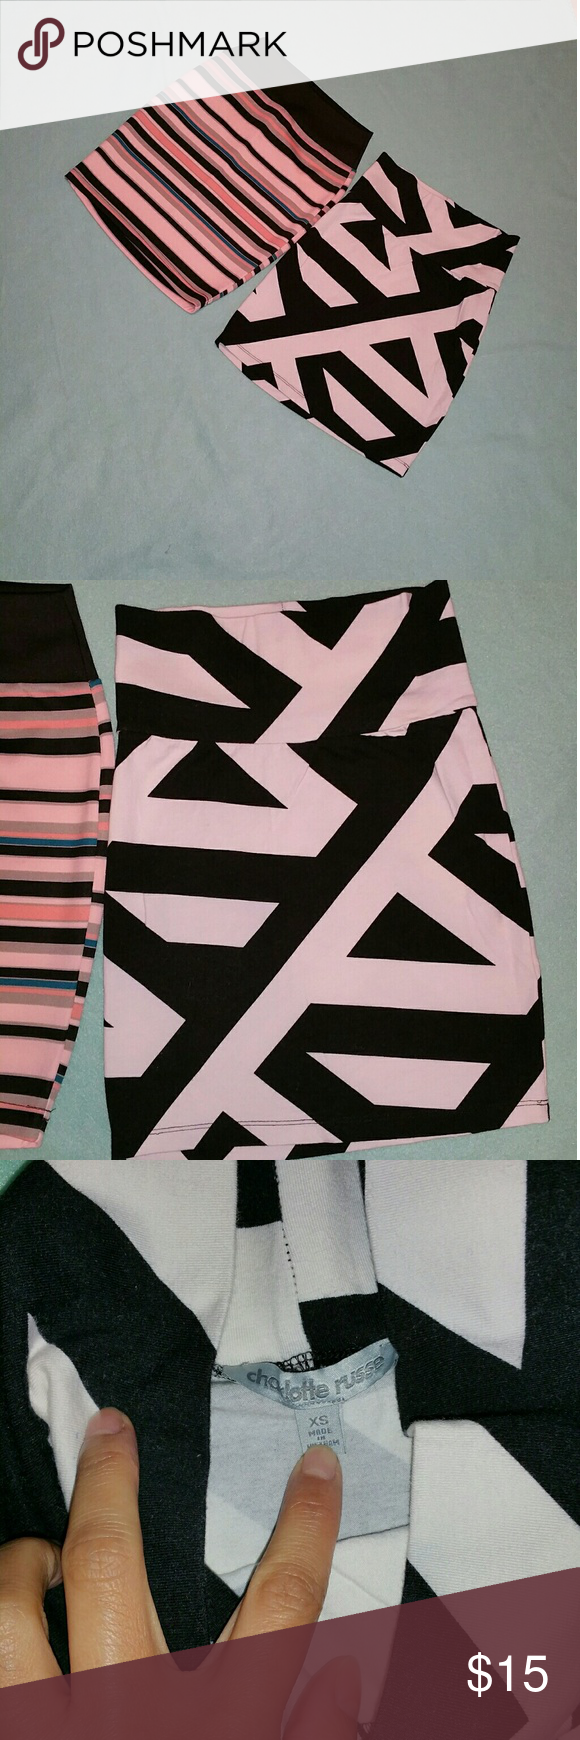 Skirts bundle Perfect condition in size xs price firm Charlotte Russe Skirts Mini